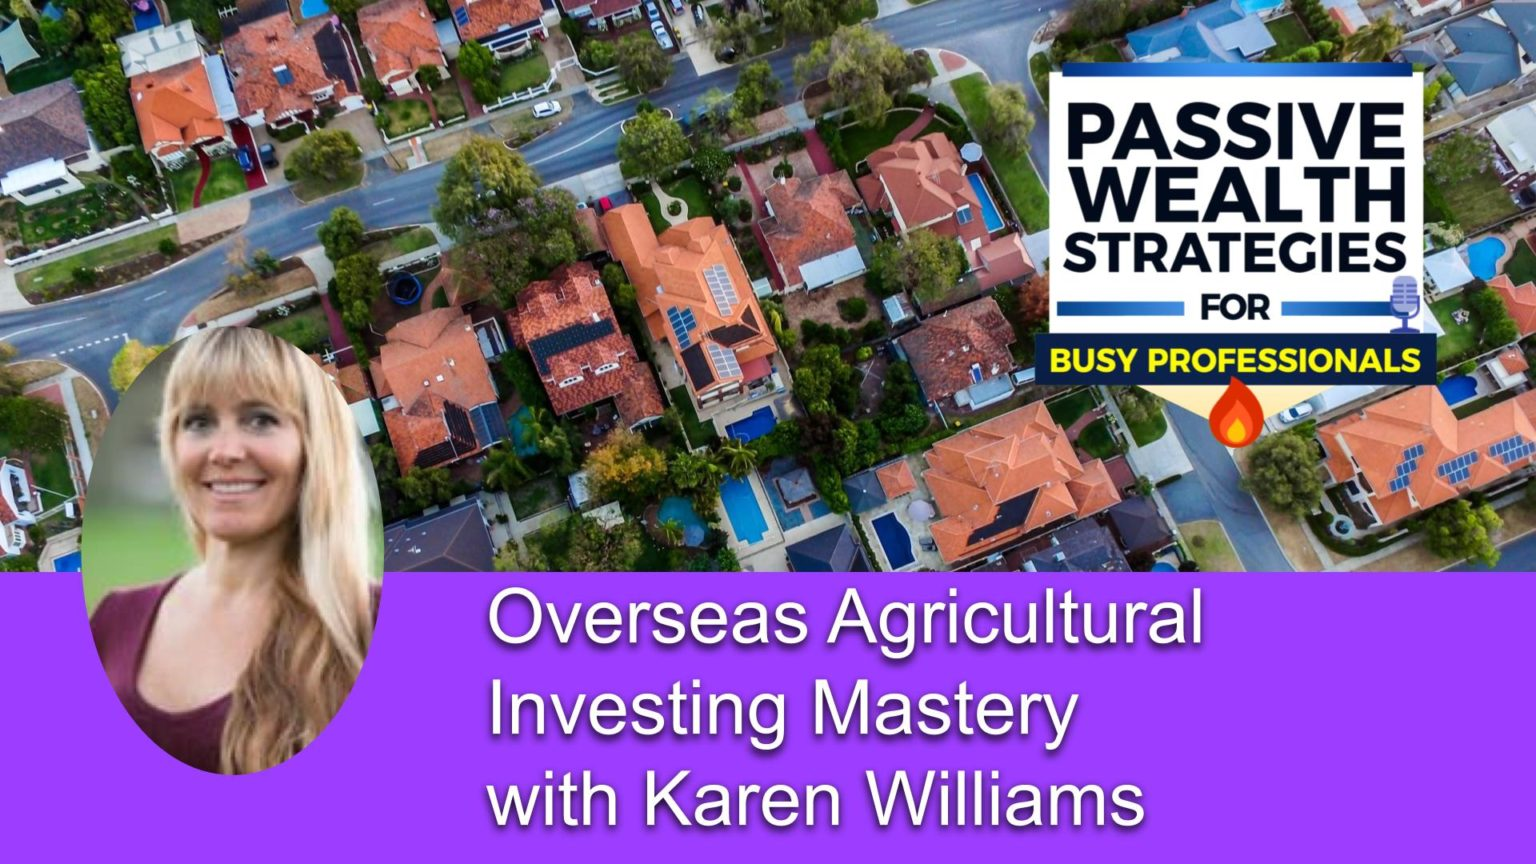 183 Overseas Agricultural Investing Mastery with Karen Williams